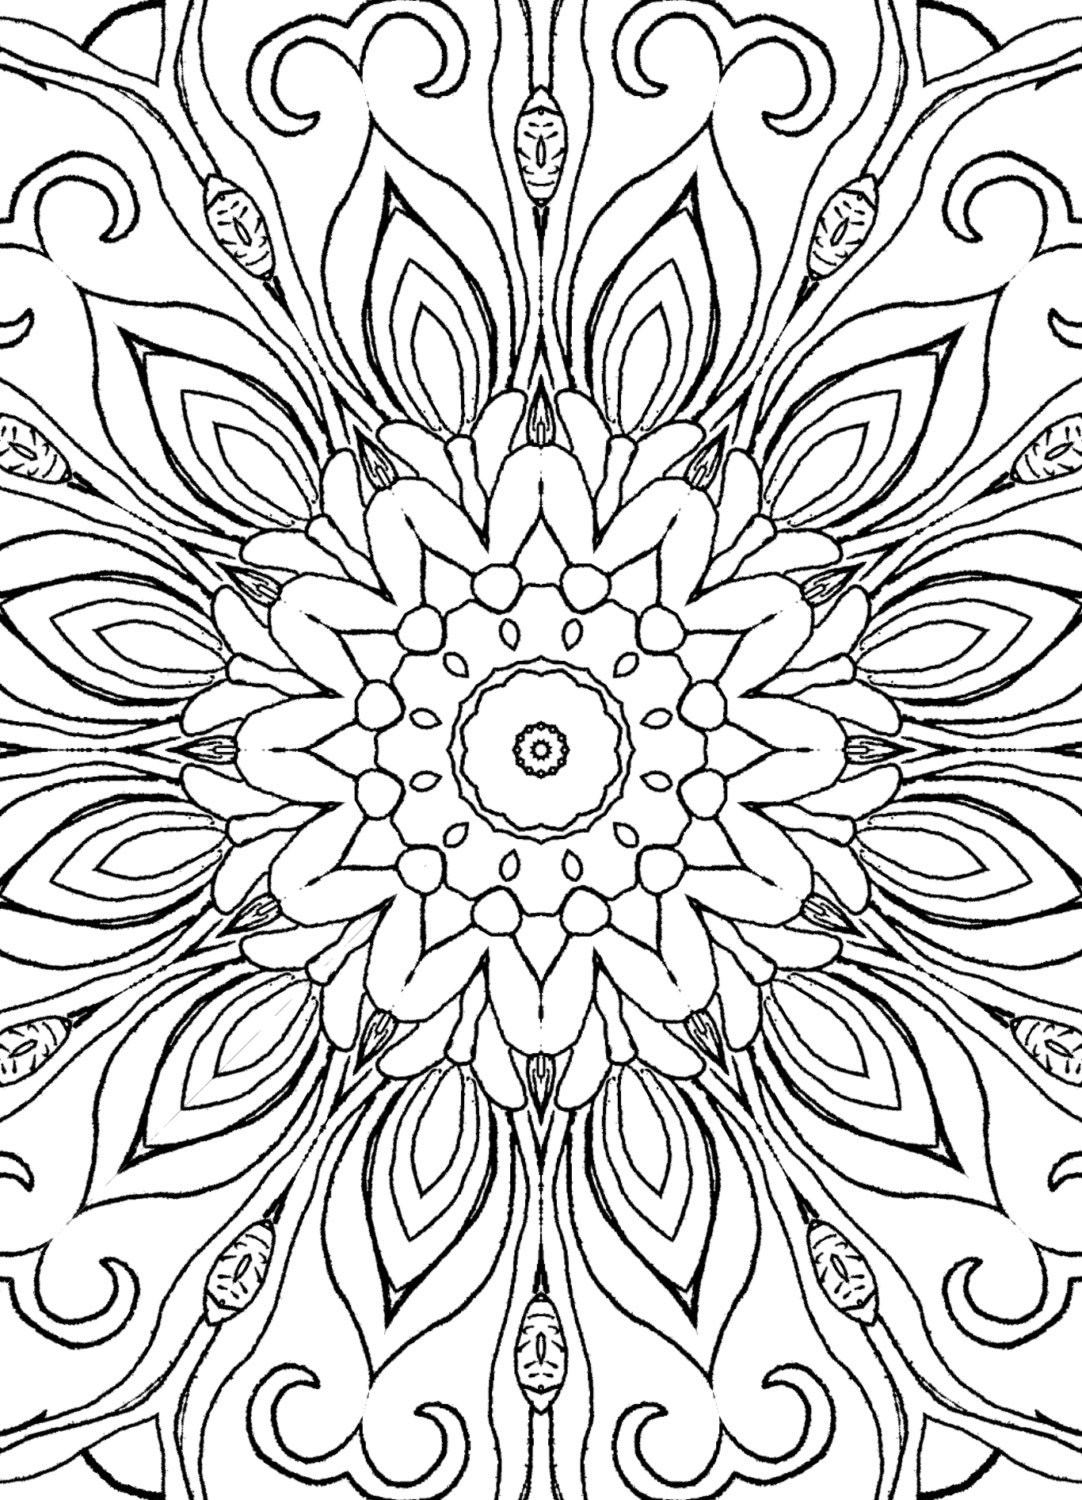 coloring pages for adult - 25 coloring pages including mandalas geometric designs rug